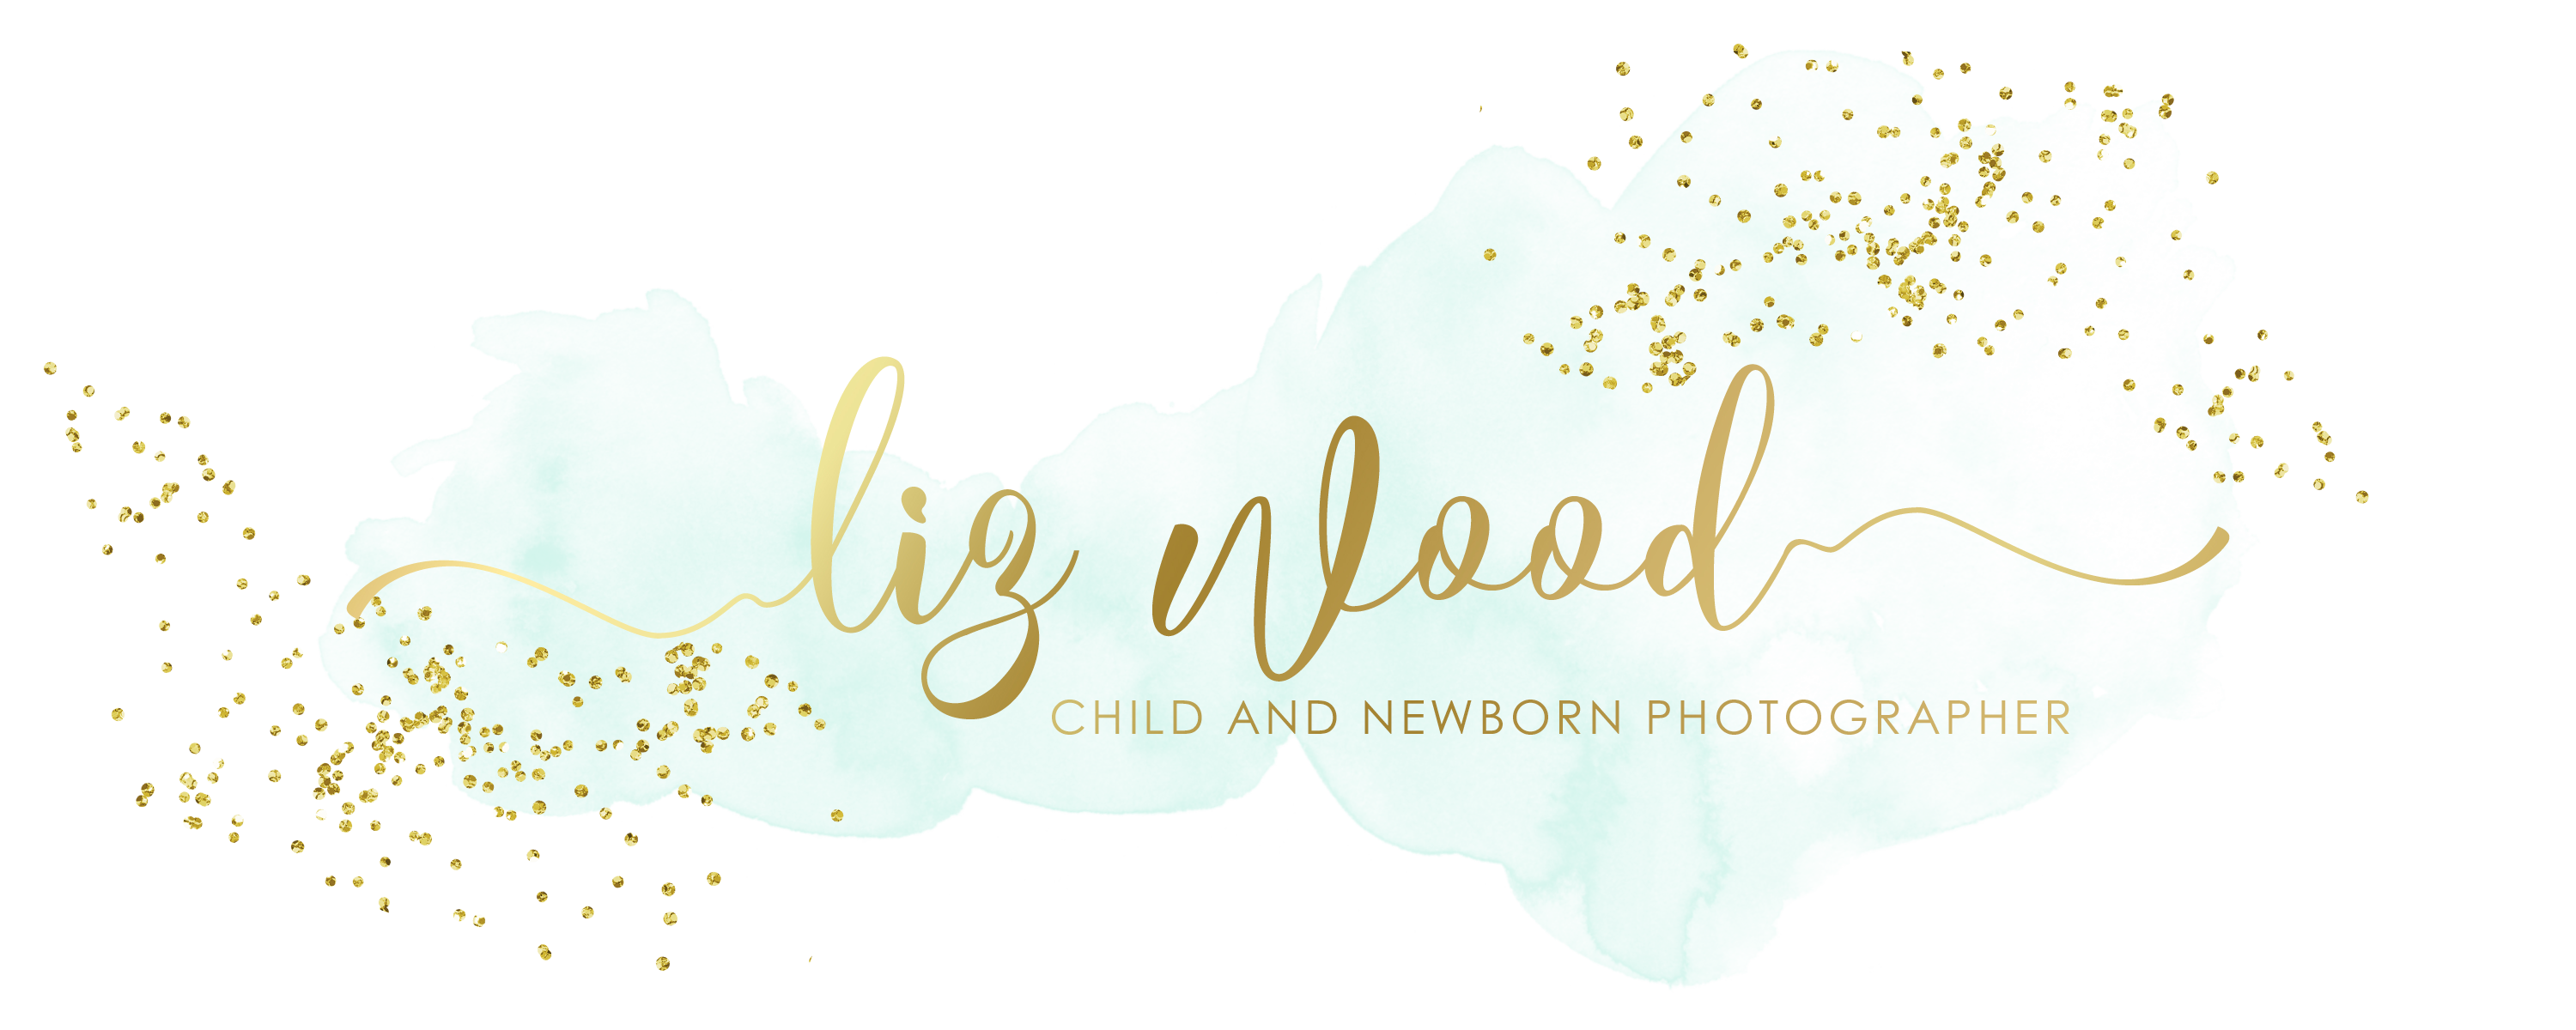 Essex Newborn Photographer. Child, family photography in Essex & Suffolk